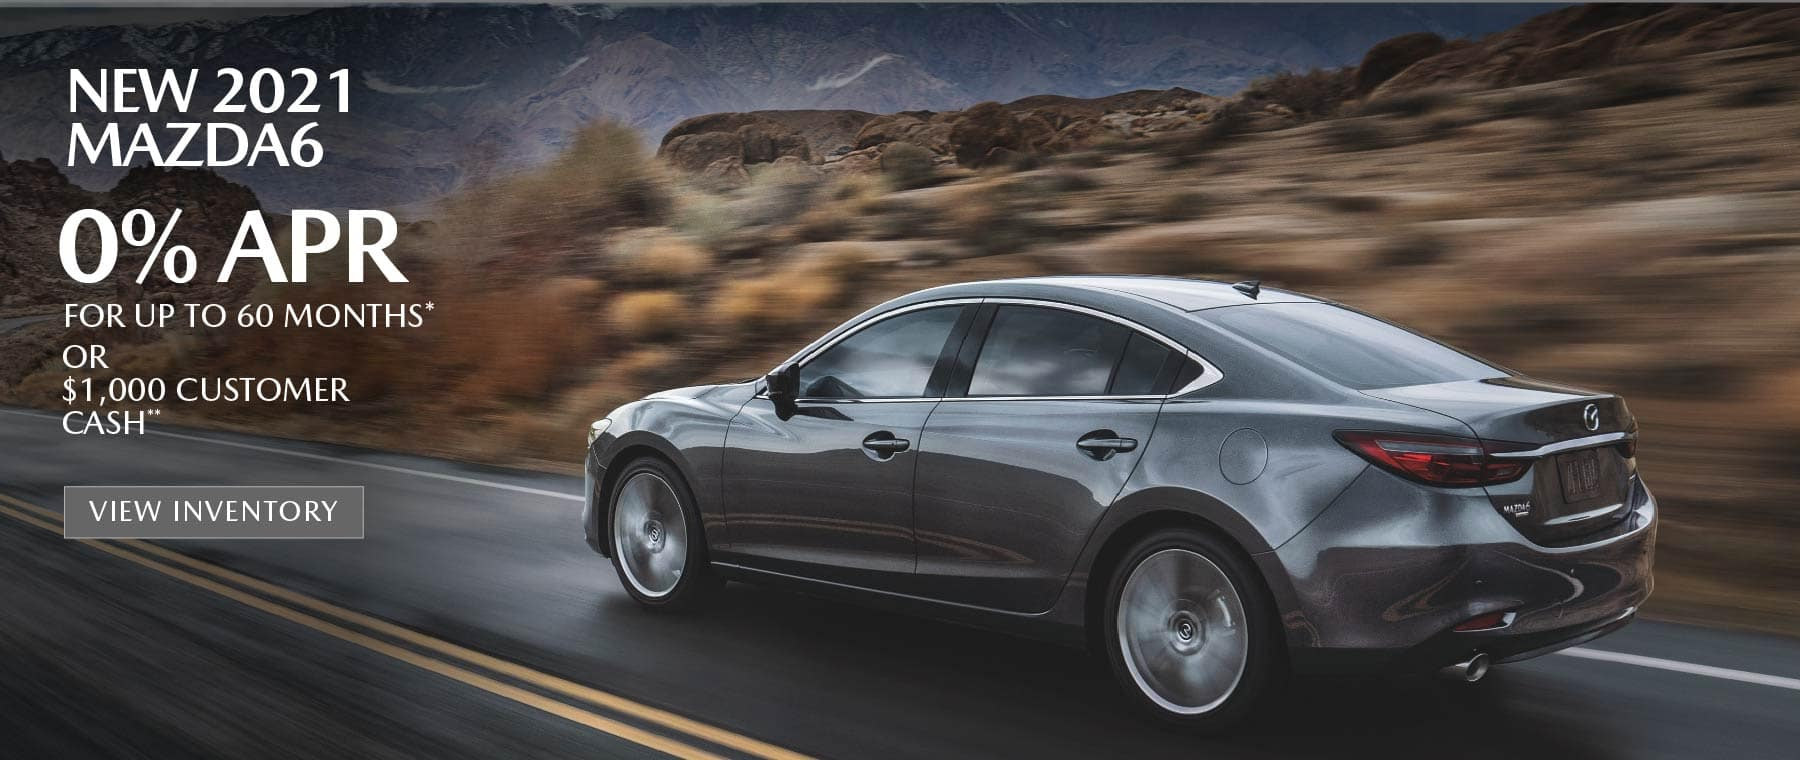 New 2021 MAZDA6 – 0% APR for up to 60 months* OR $1,000 Customer Cash**